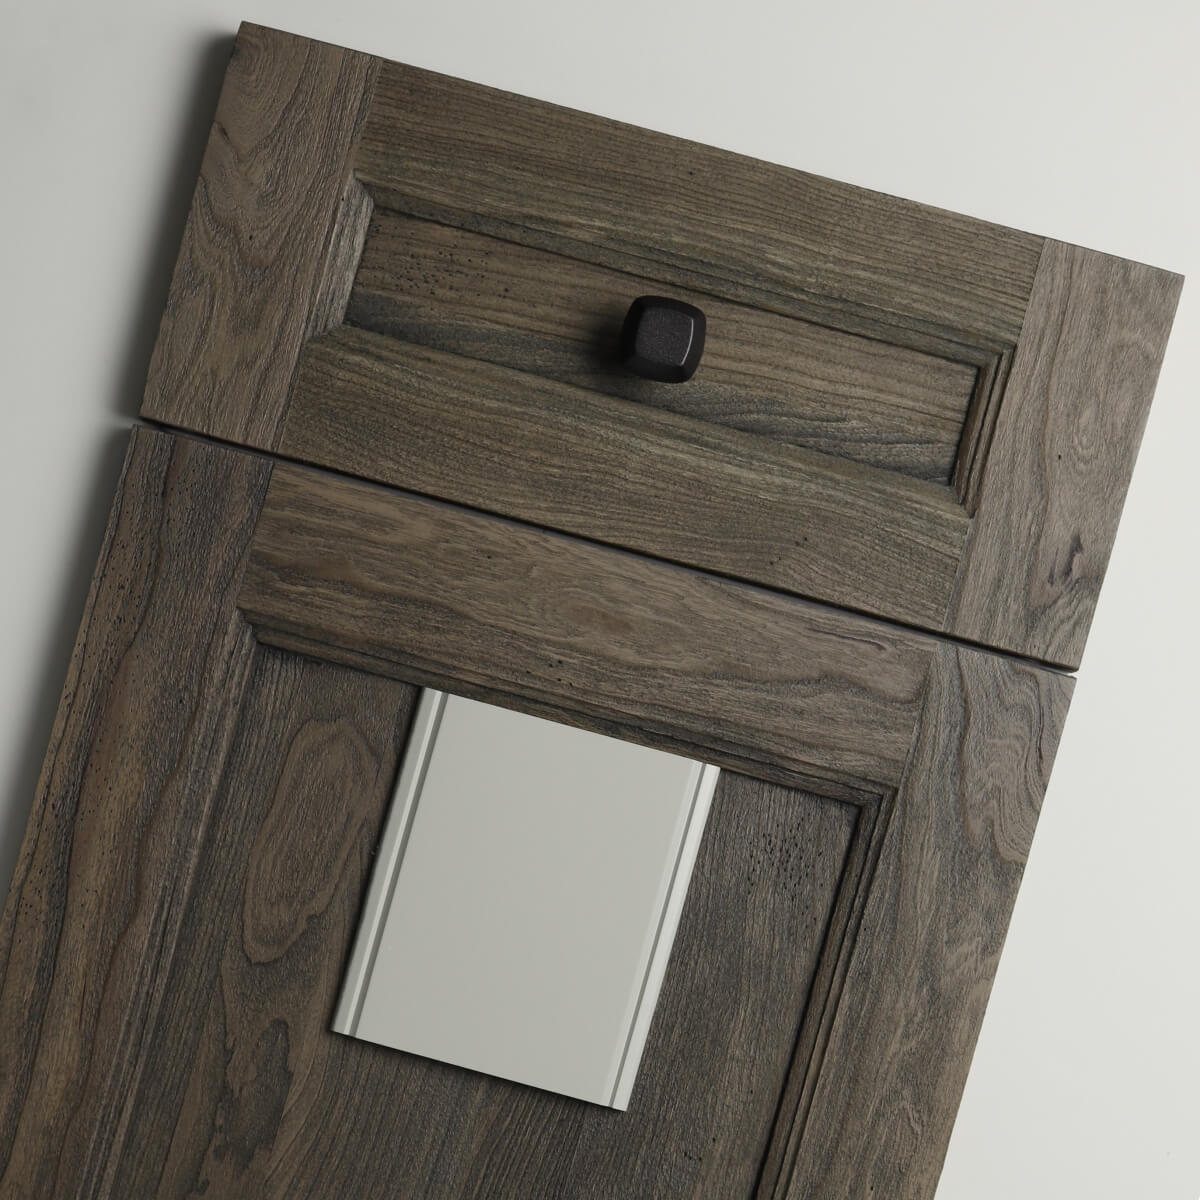 This Dura Supreme Cabinetry is shown in the Meridien door style in Weathered